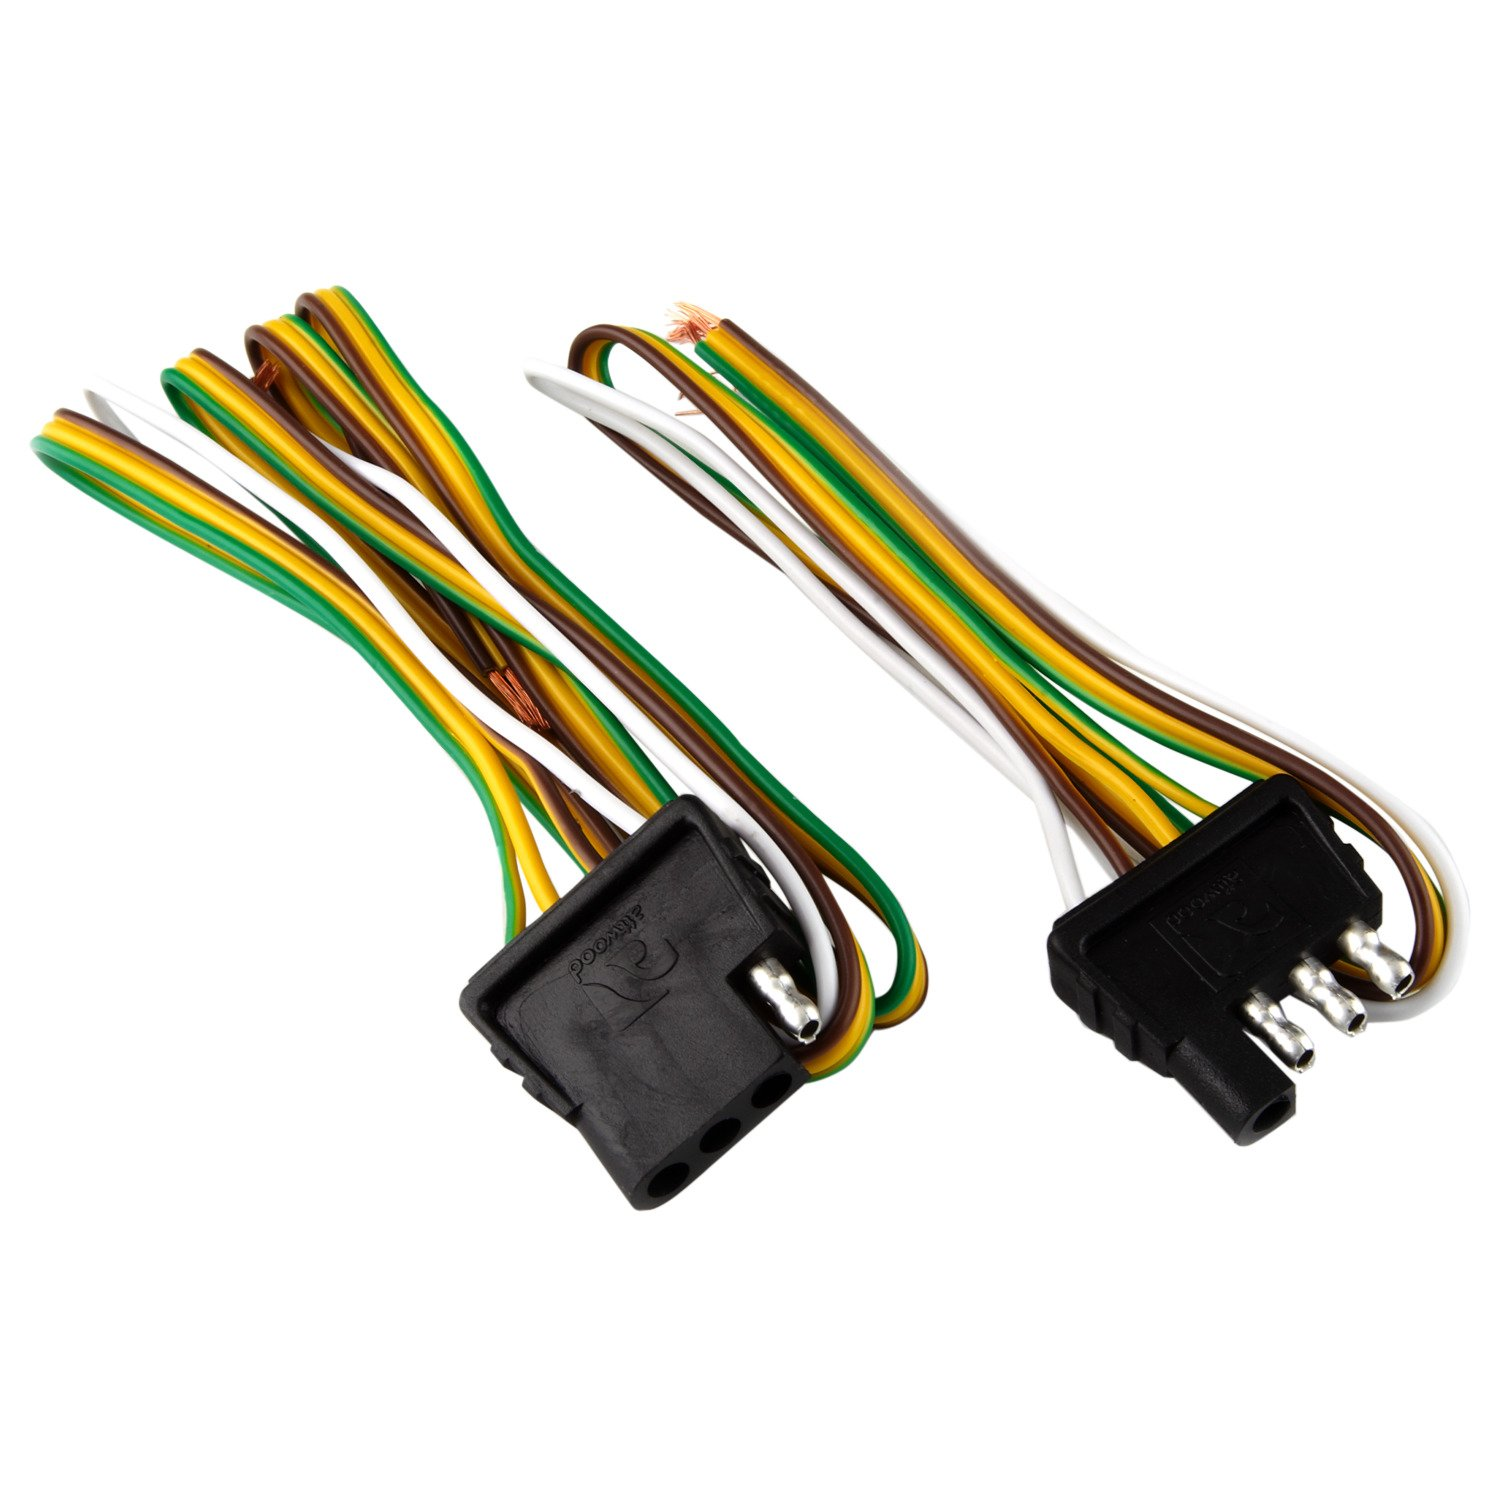 small resolution of attwood 4 way flat wiring harness kit for vehicles and trailers wire harness tubing 4 wire wiring harness